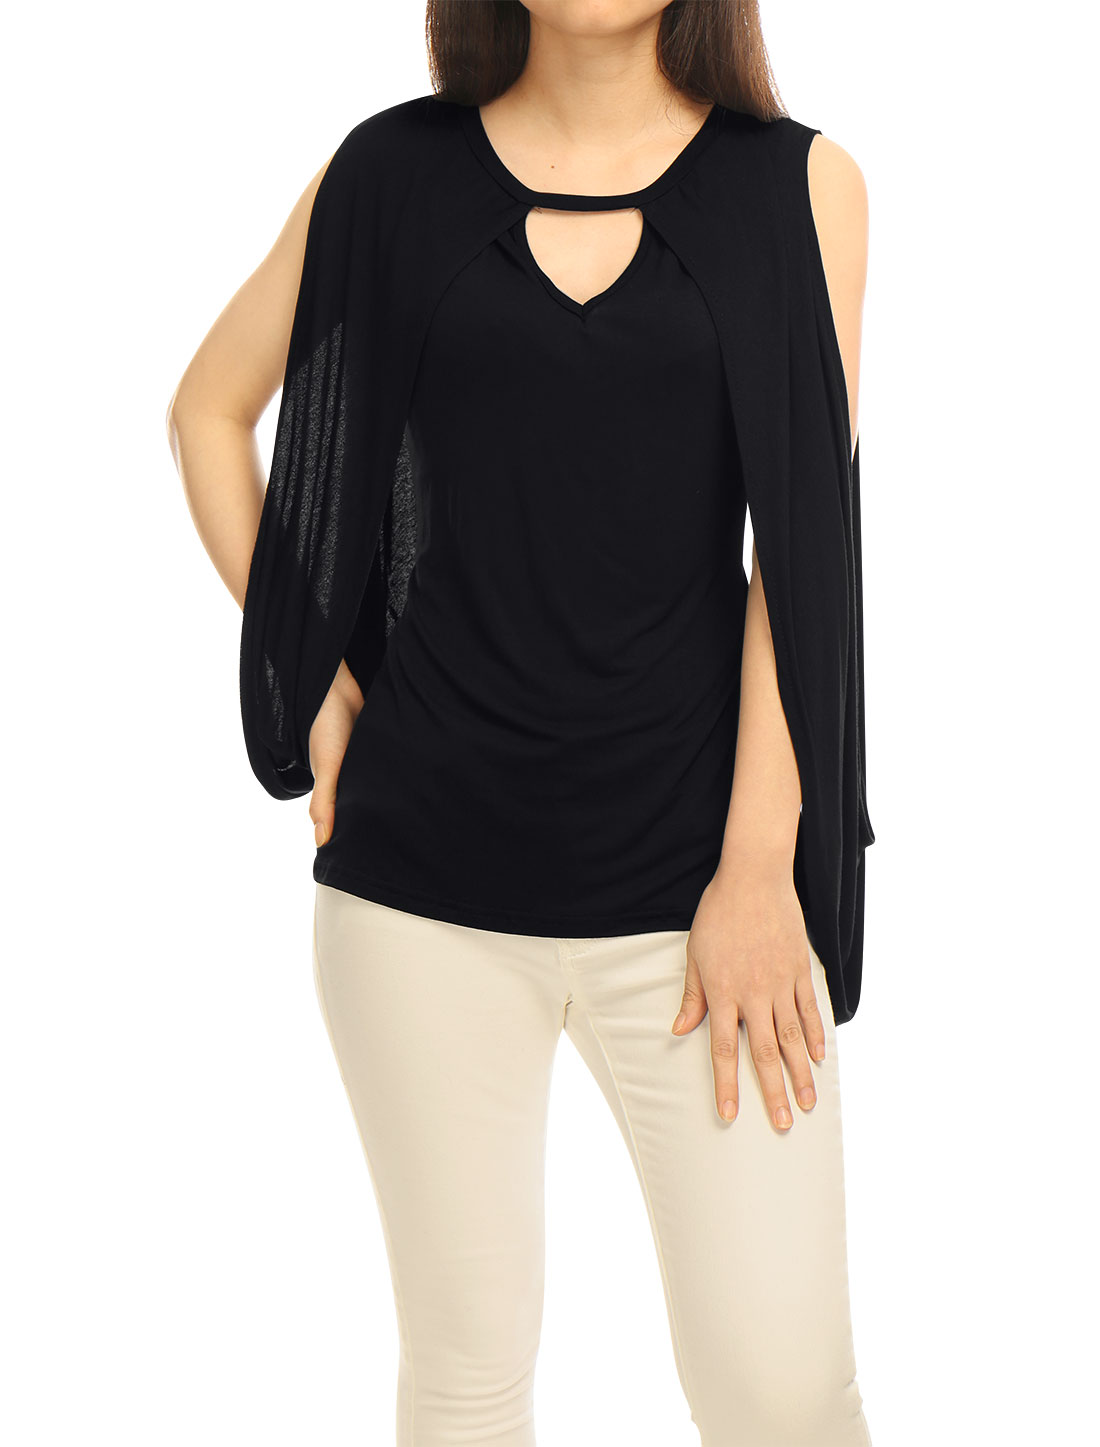 Women Sleeveless Keyhole Front Poncho Design Slim Fit Top Black S